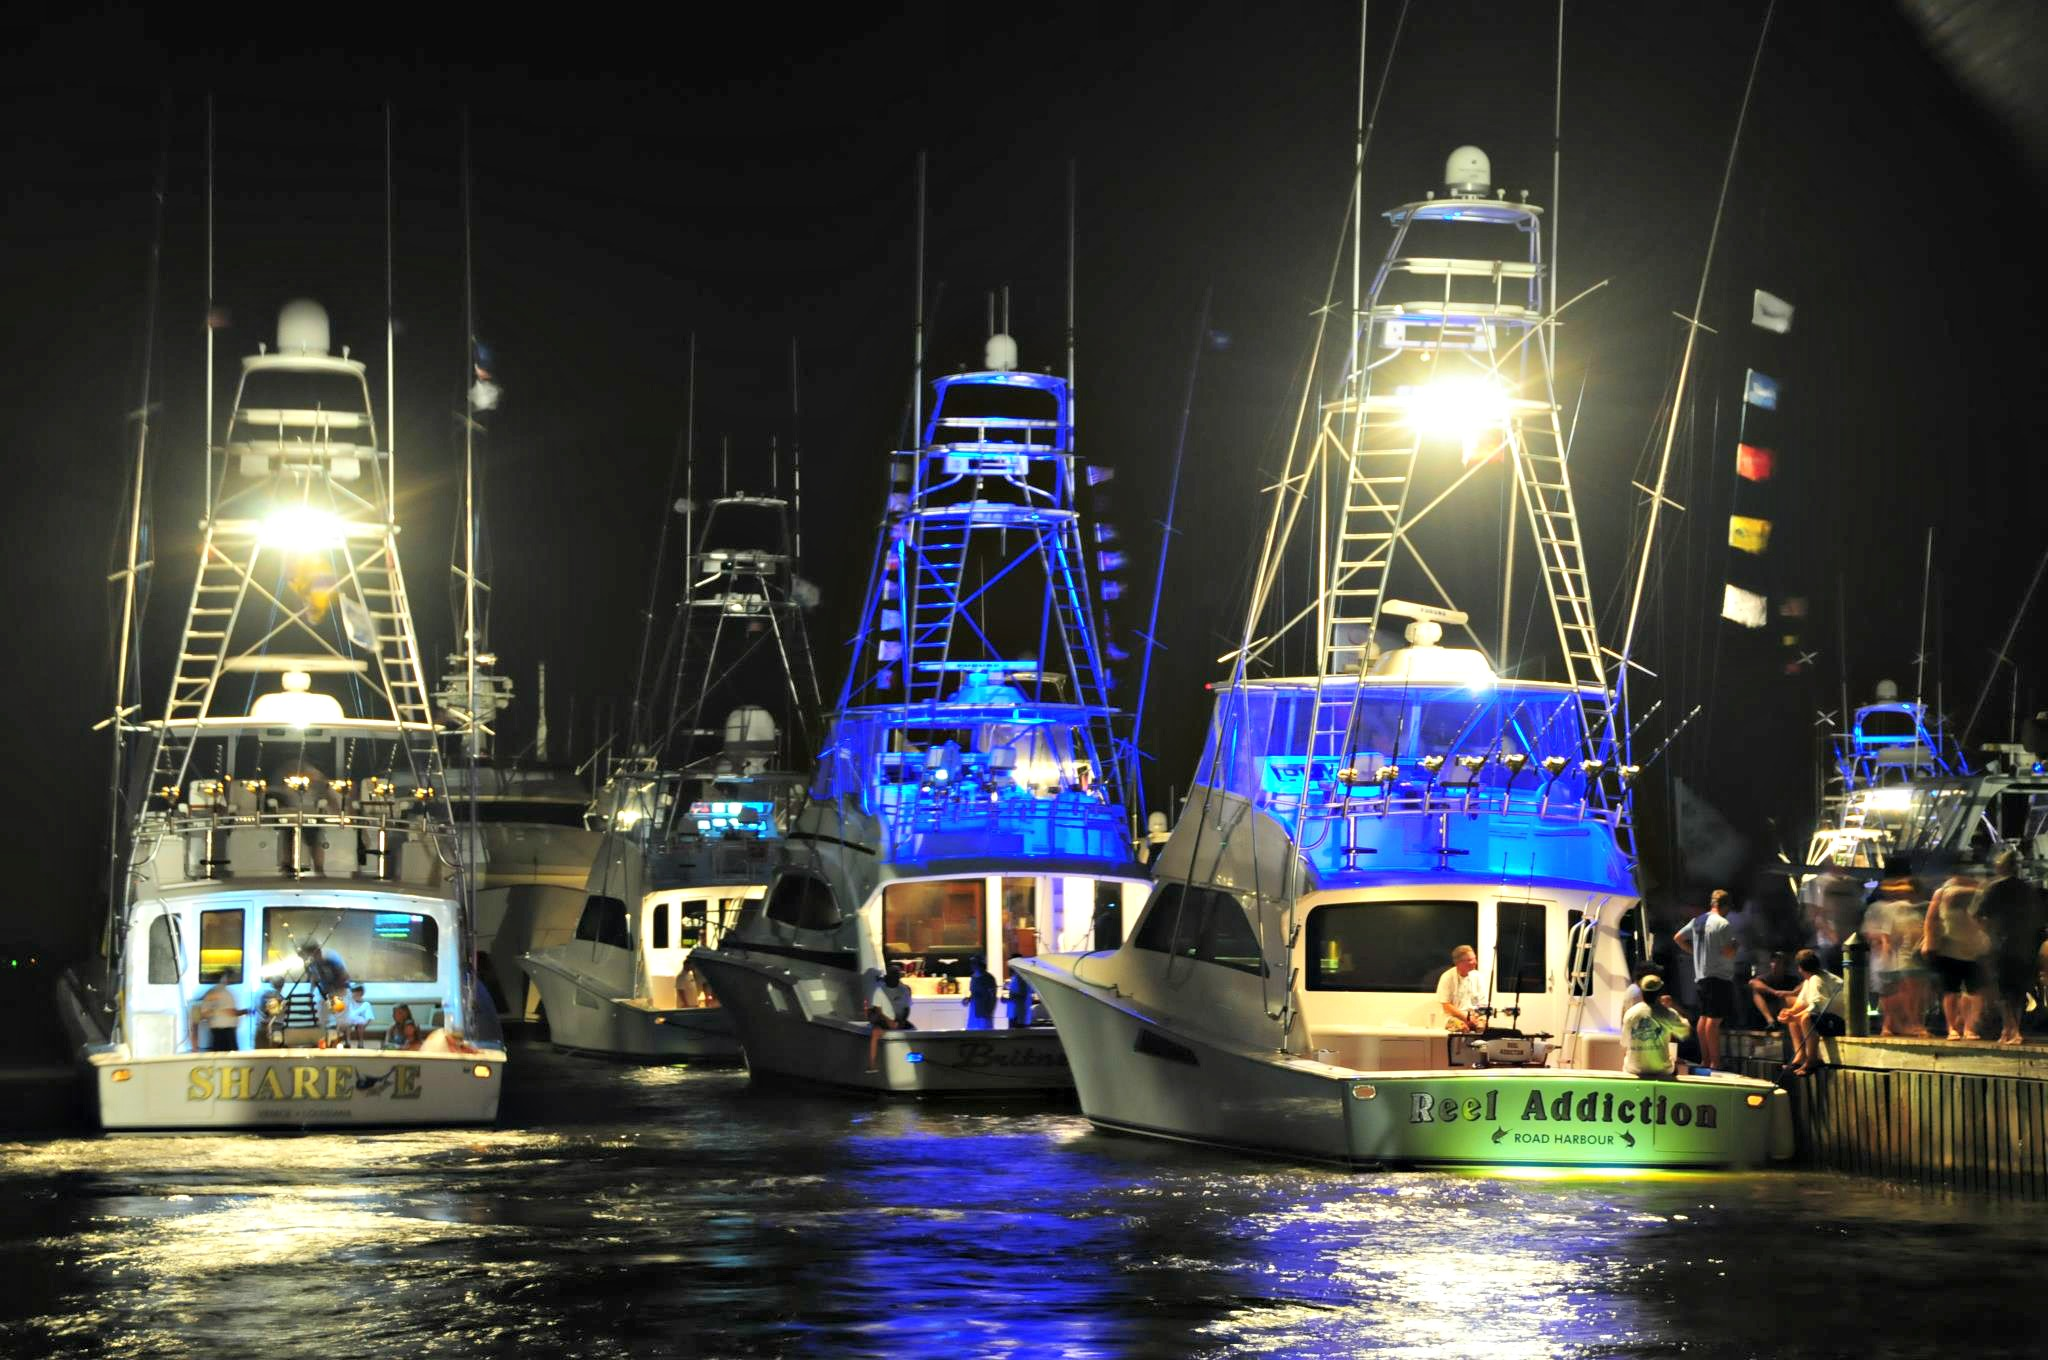 Night view of fishing boats under way during the Emerald Coast Blue Marlin Classic at Sandestin